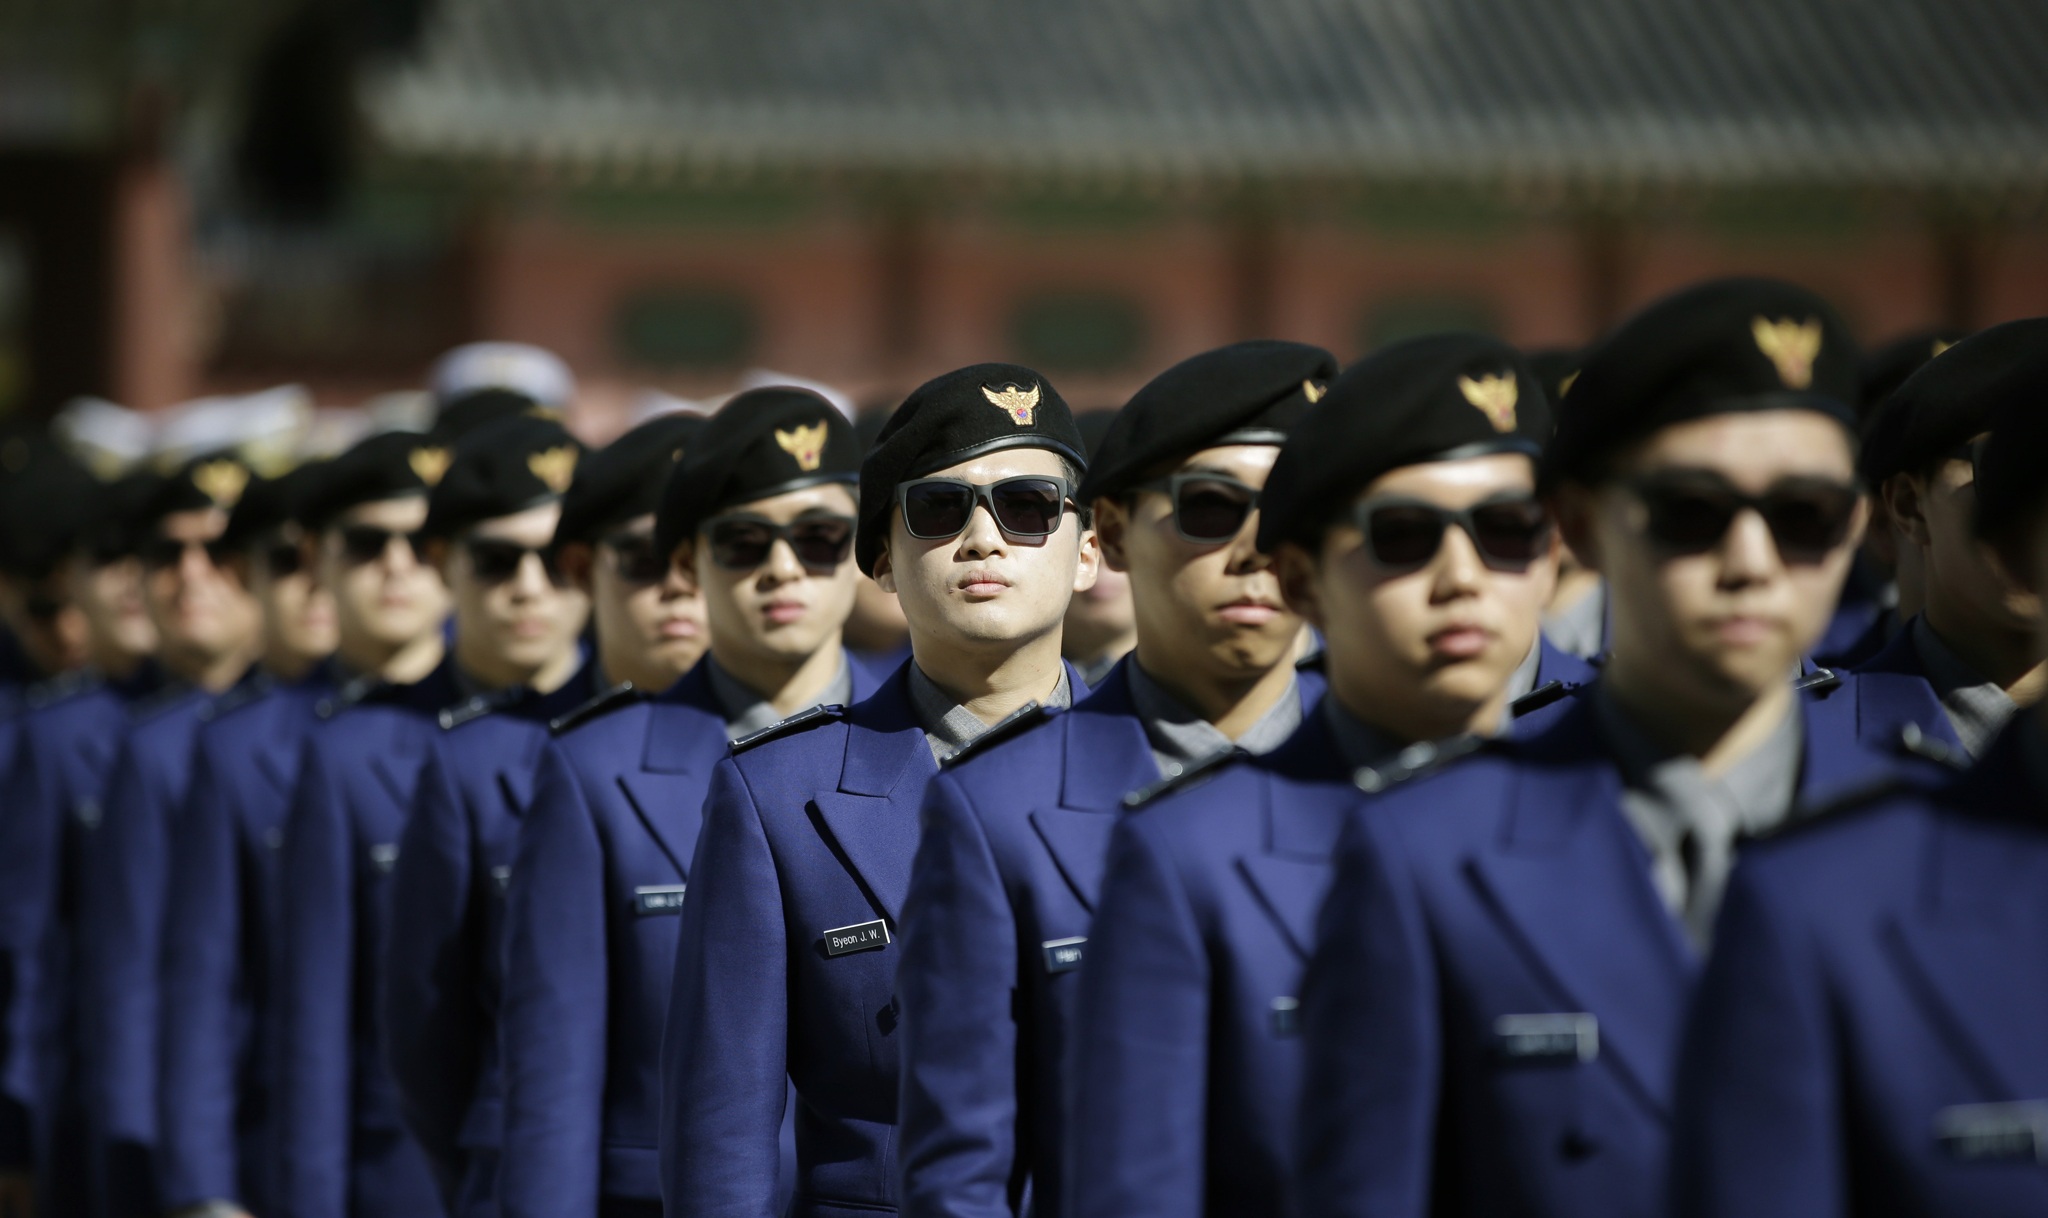 South Korean tourist police officers queue up for their inauguration ceremony near the Gwanghwamun, the main gate of the 14th-century Gyeongbok Palace and also one of South Korea's well known landmarks, in Seoul, South Korea, Wednesday, Oct. 16, 2013. South Korea unveiled its new tourist police force to protect foreign tourists during their stay in Seoul. (AP Photo/Lee Jin-man)